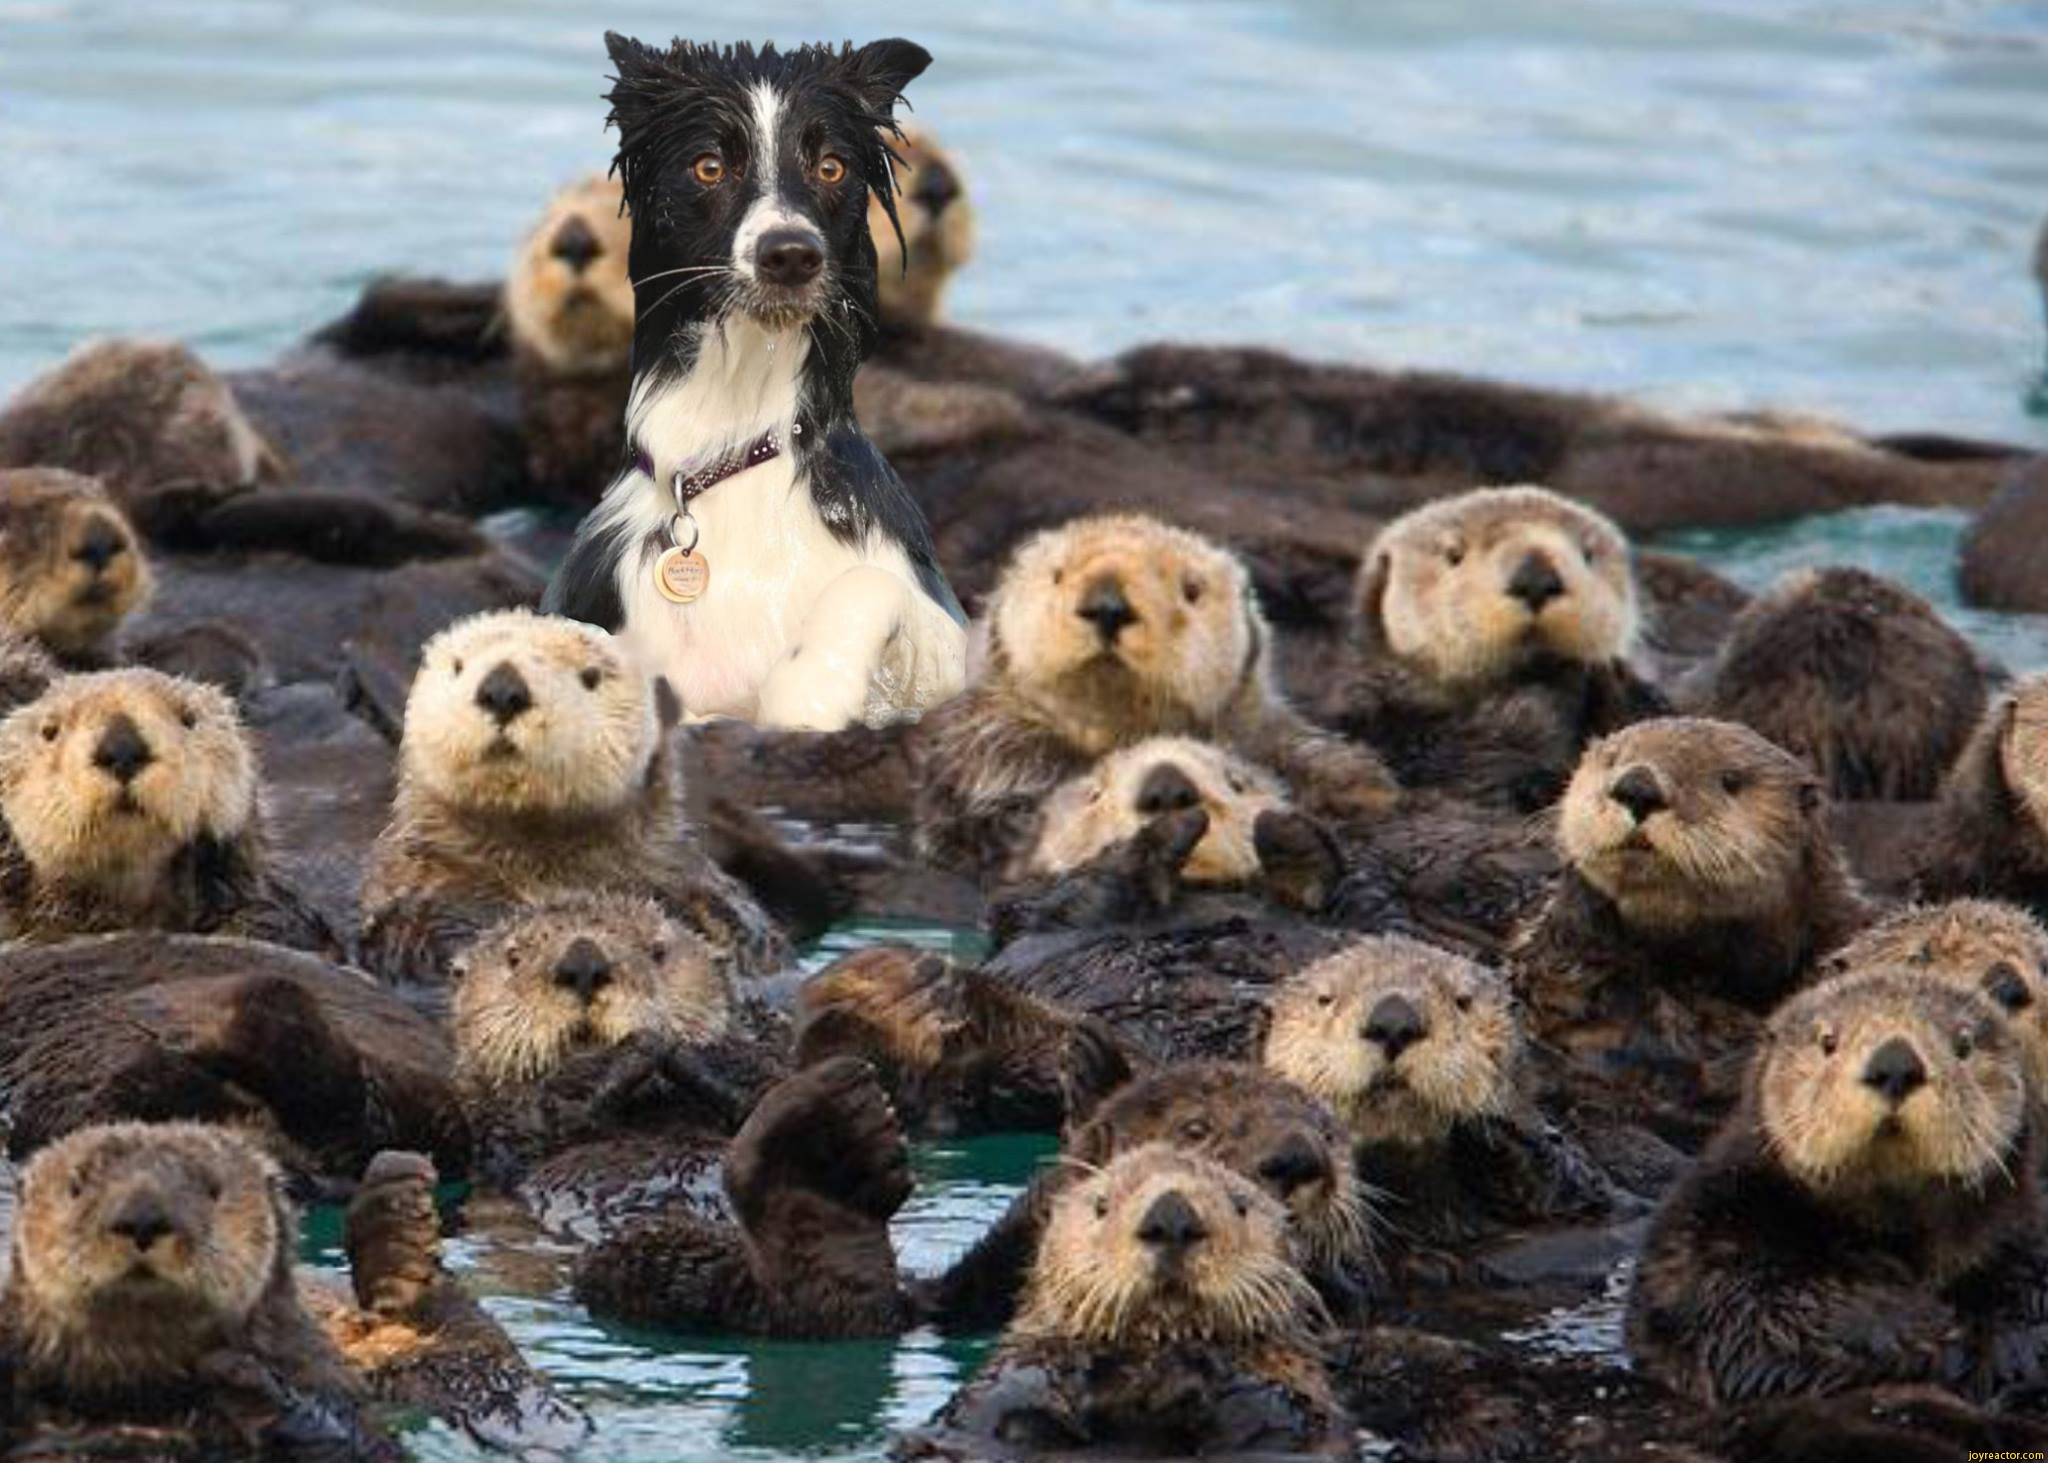 sea-otter-dog.jpg